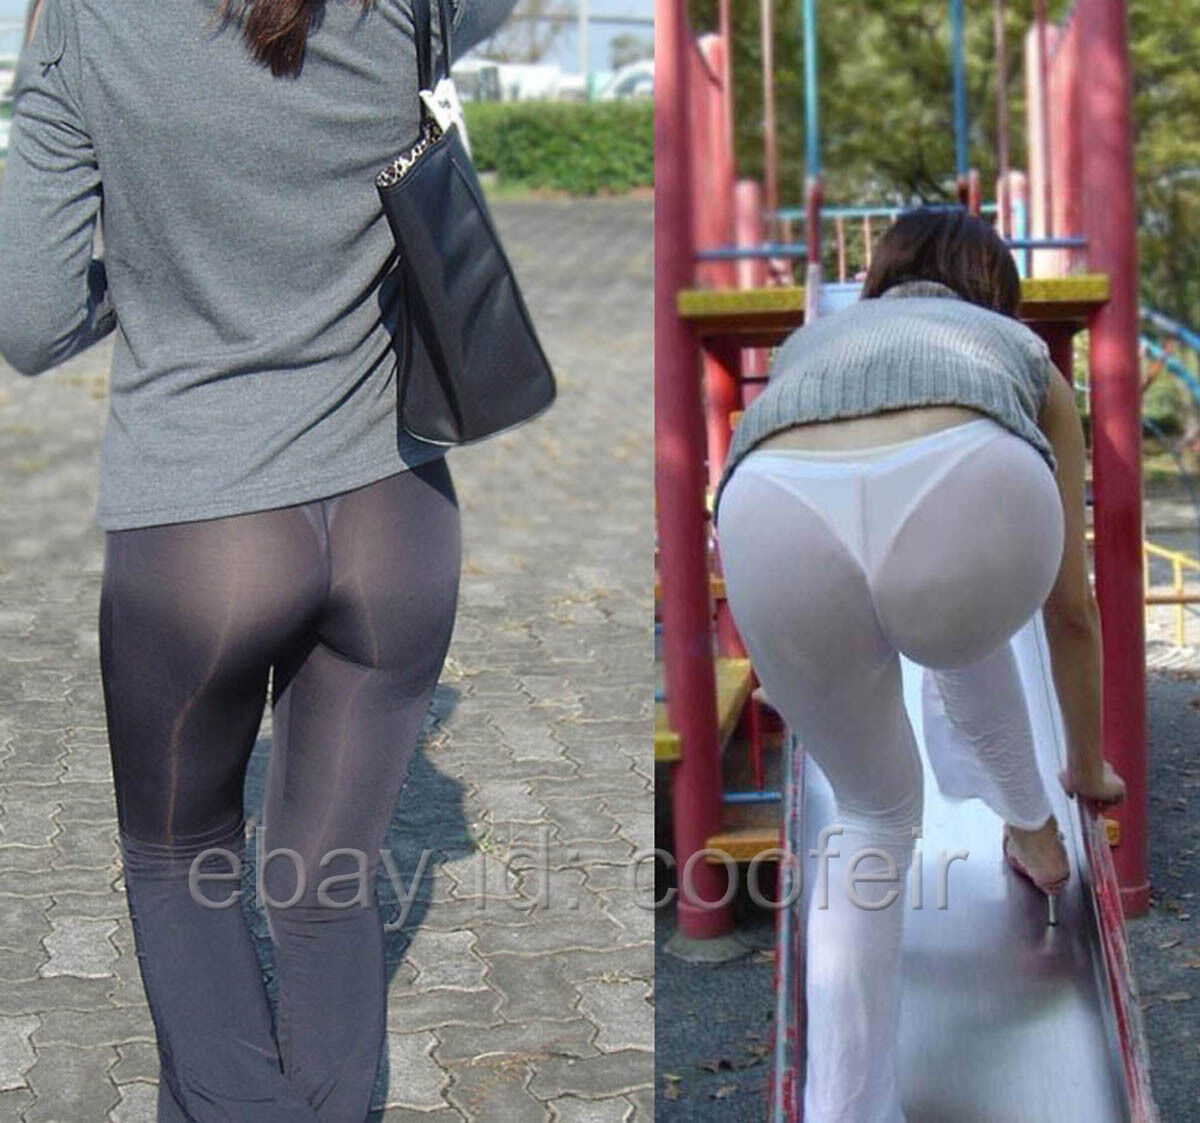 See through pants voyeur pics